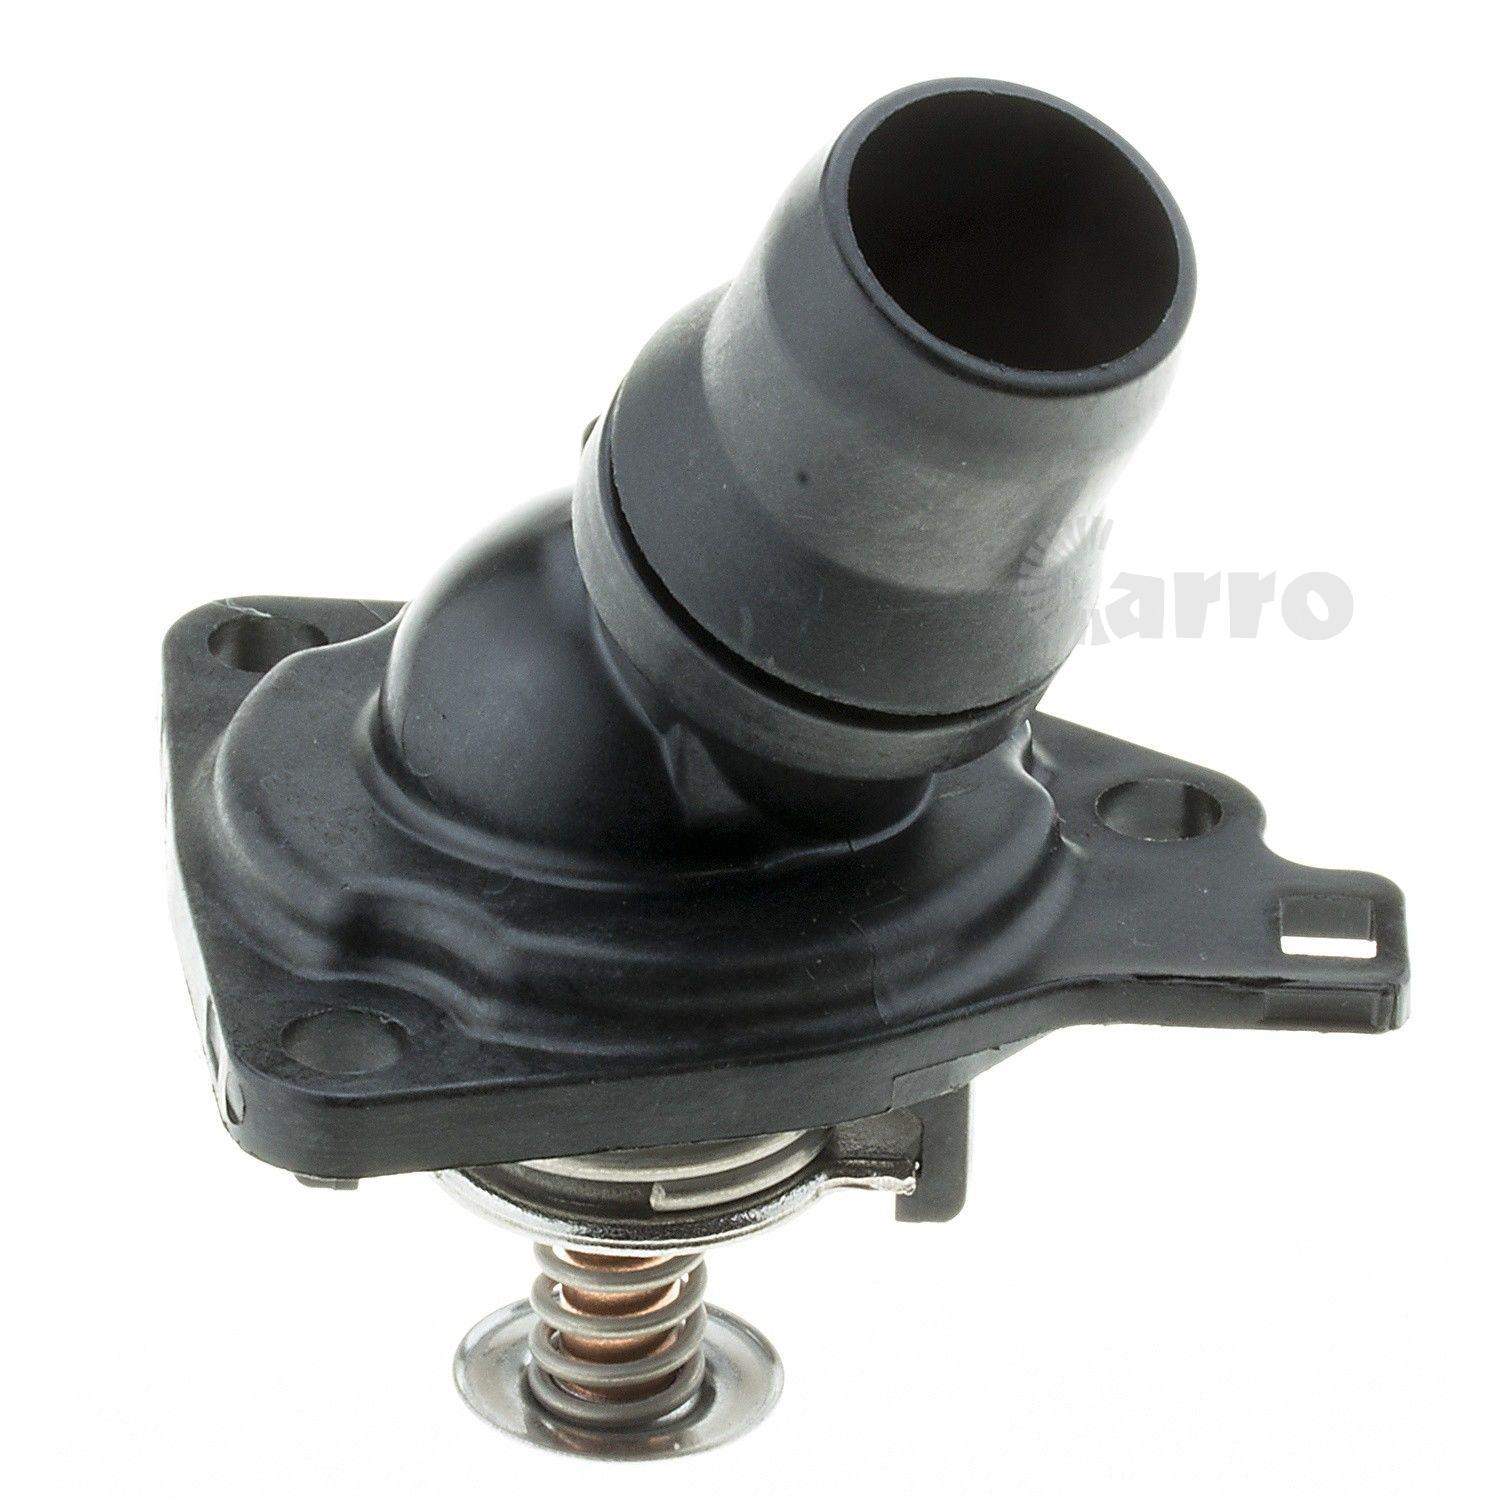 OE# 19301-RAA-A02 New Thermostat Housing For Honda Accord